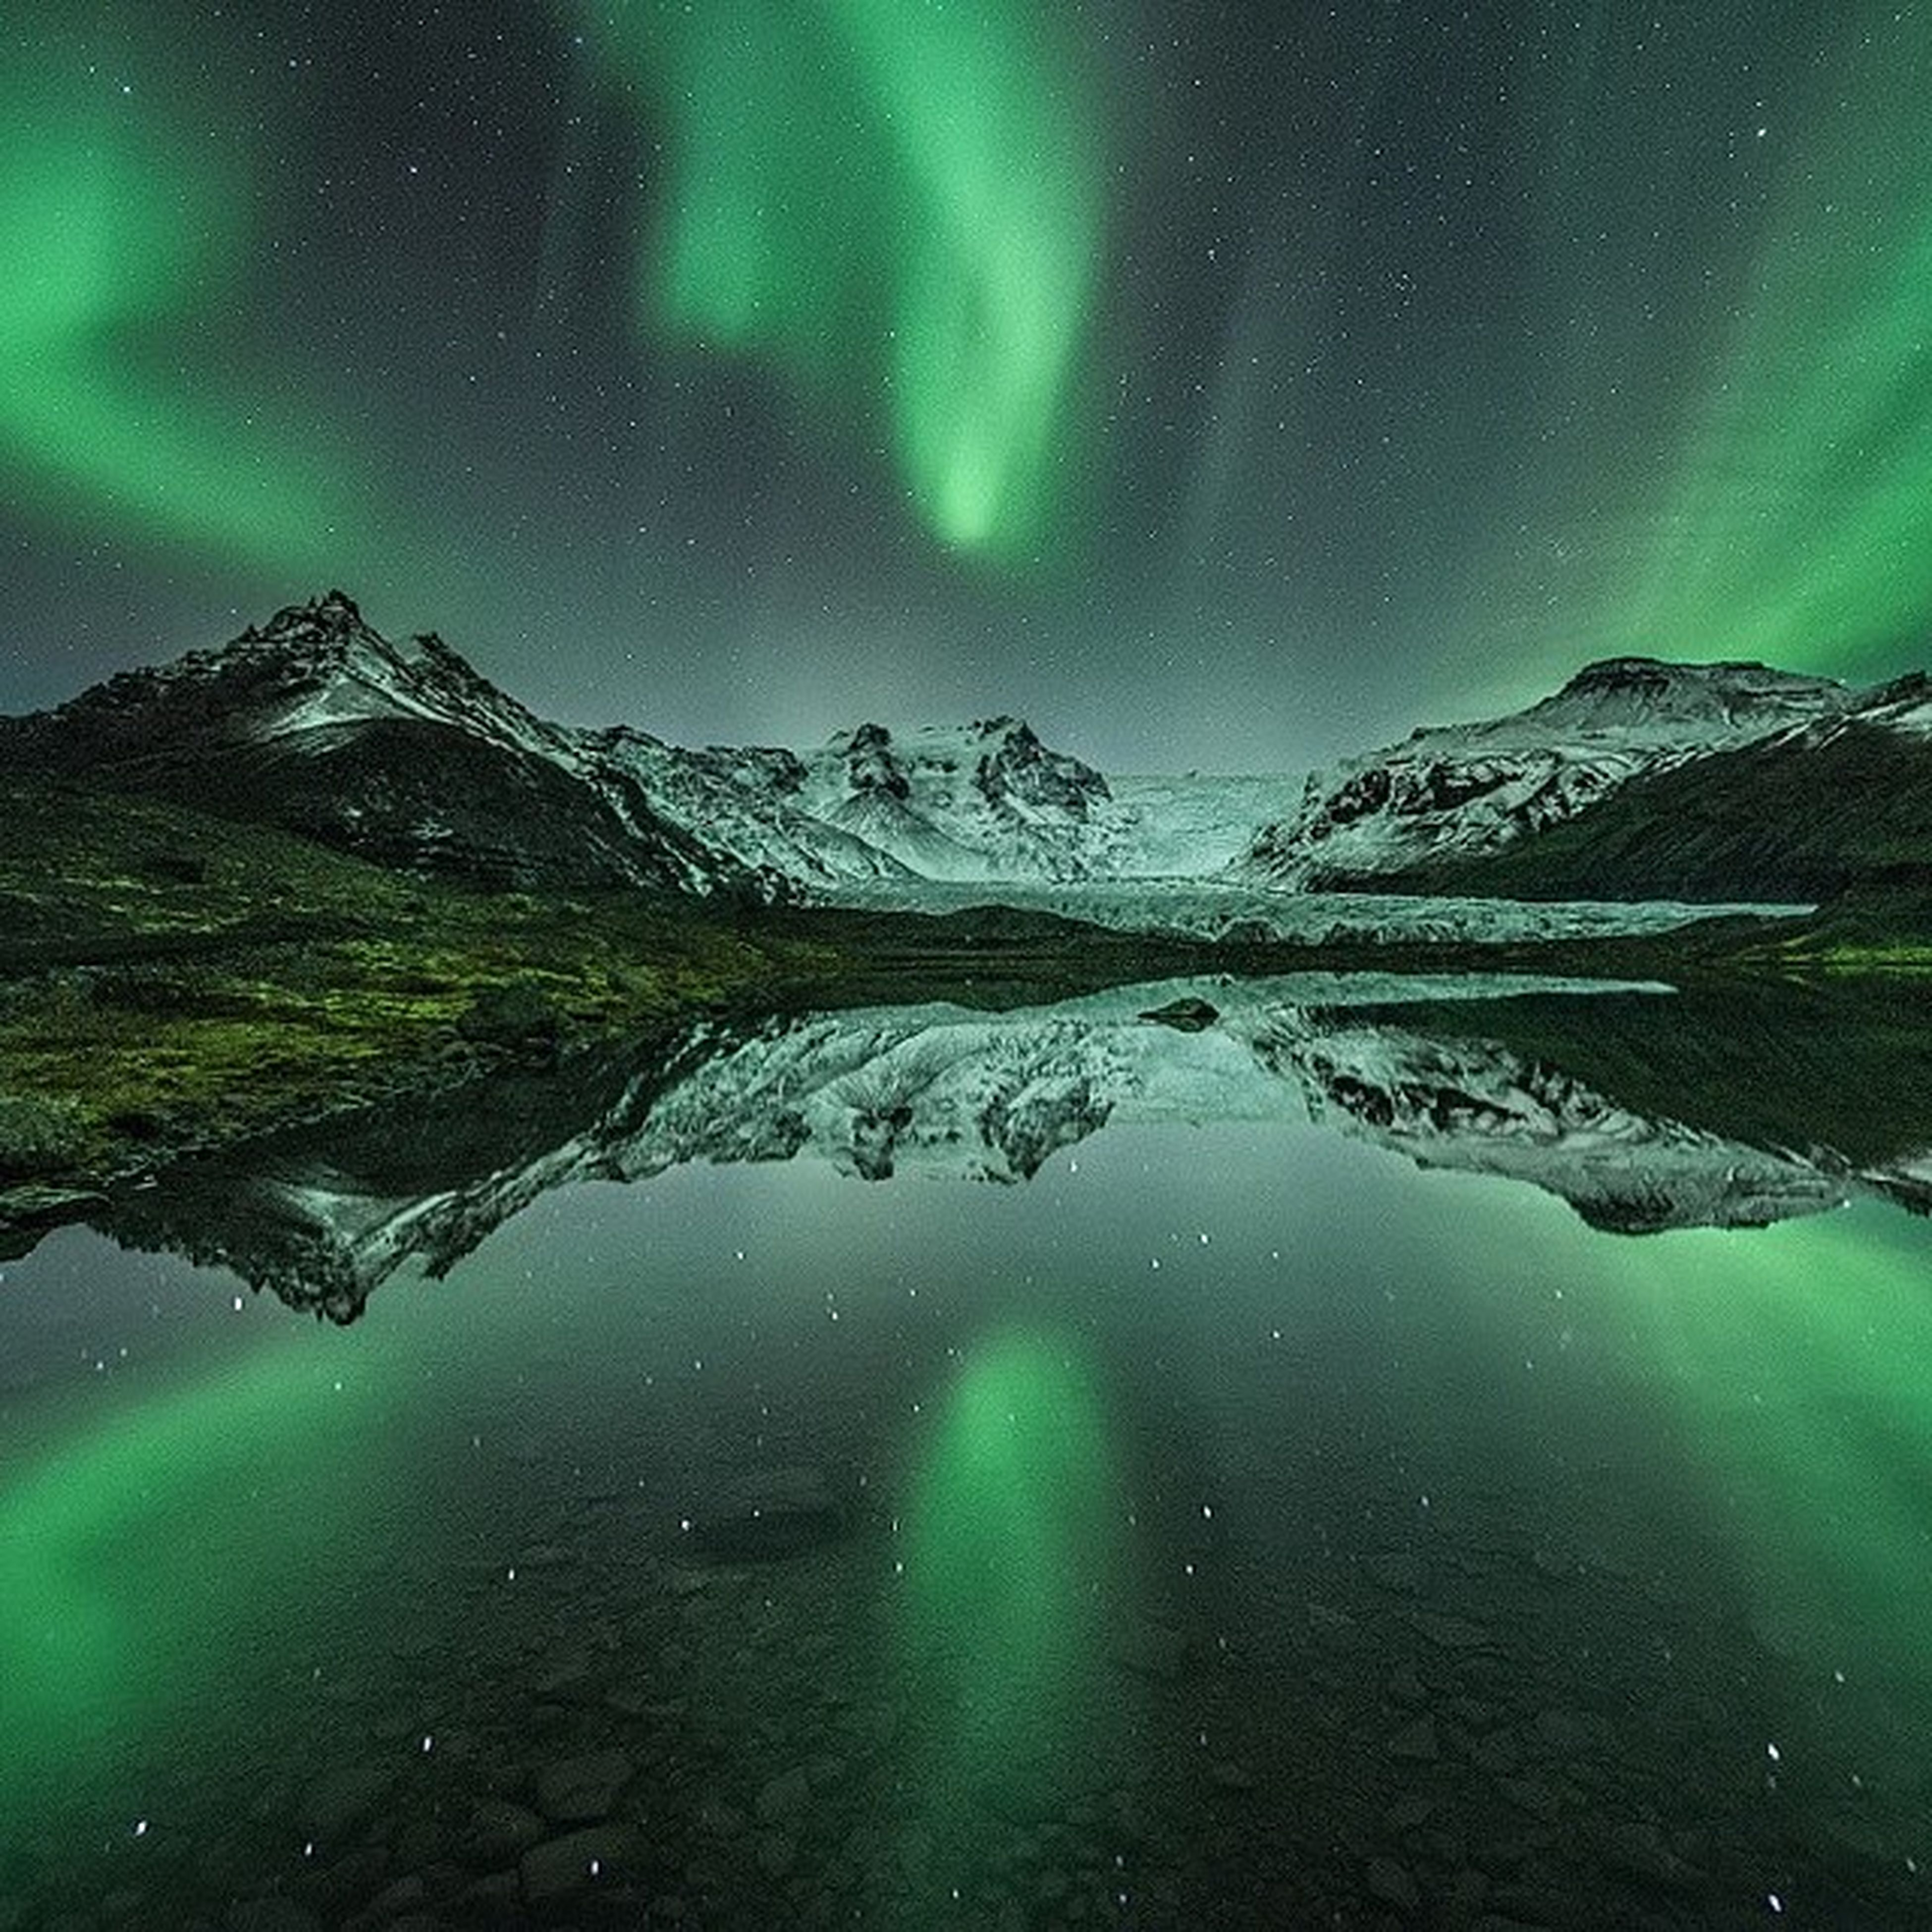 scenics, tranquil scene, tranquility, beauty in nature, mountain, sky, night, water, nature, star - space, astronomy, idyllic, blue, mountain range, star field, lake, majestic, landscape, reflection, outdoors